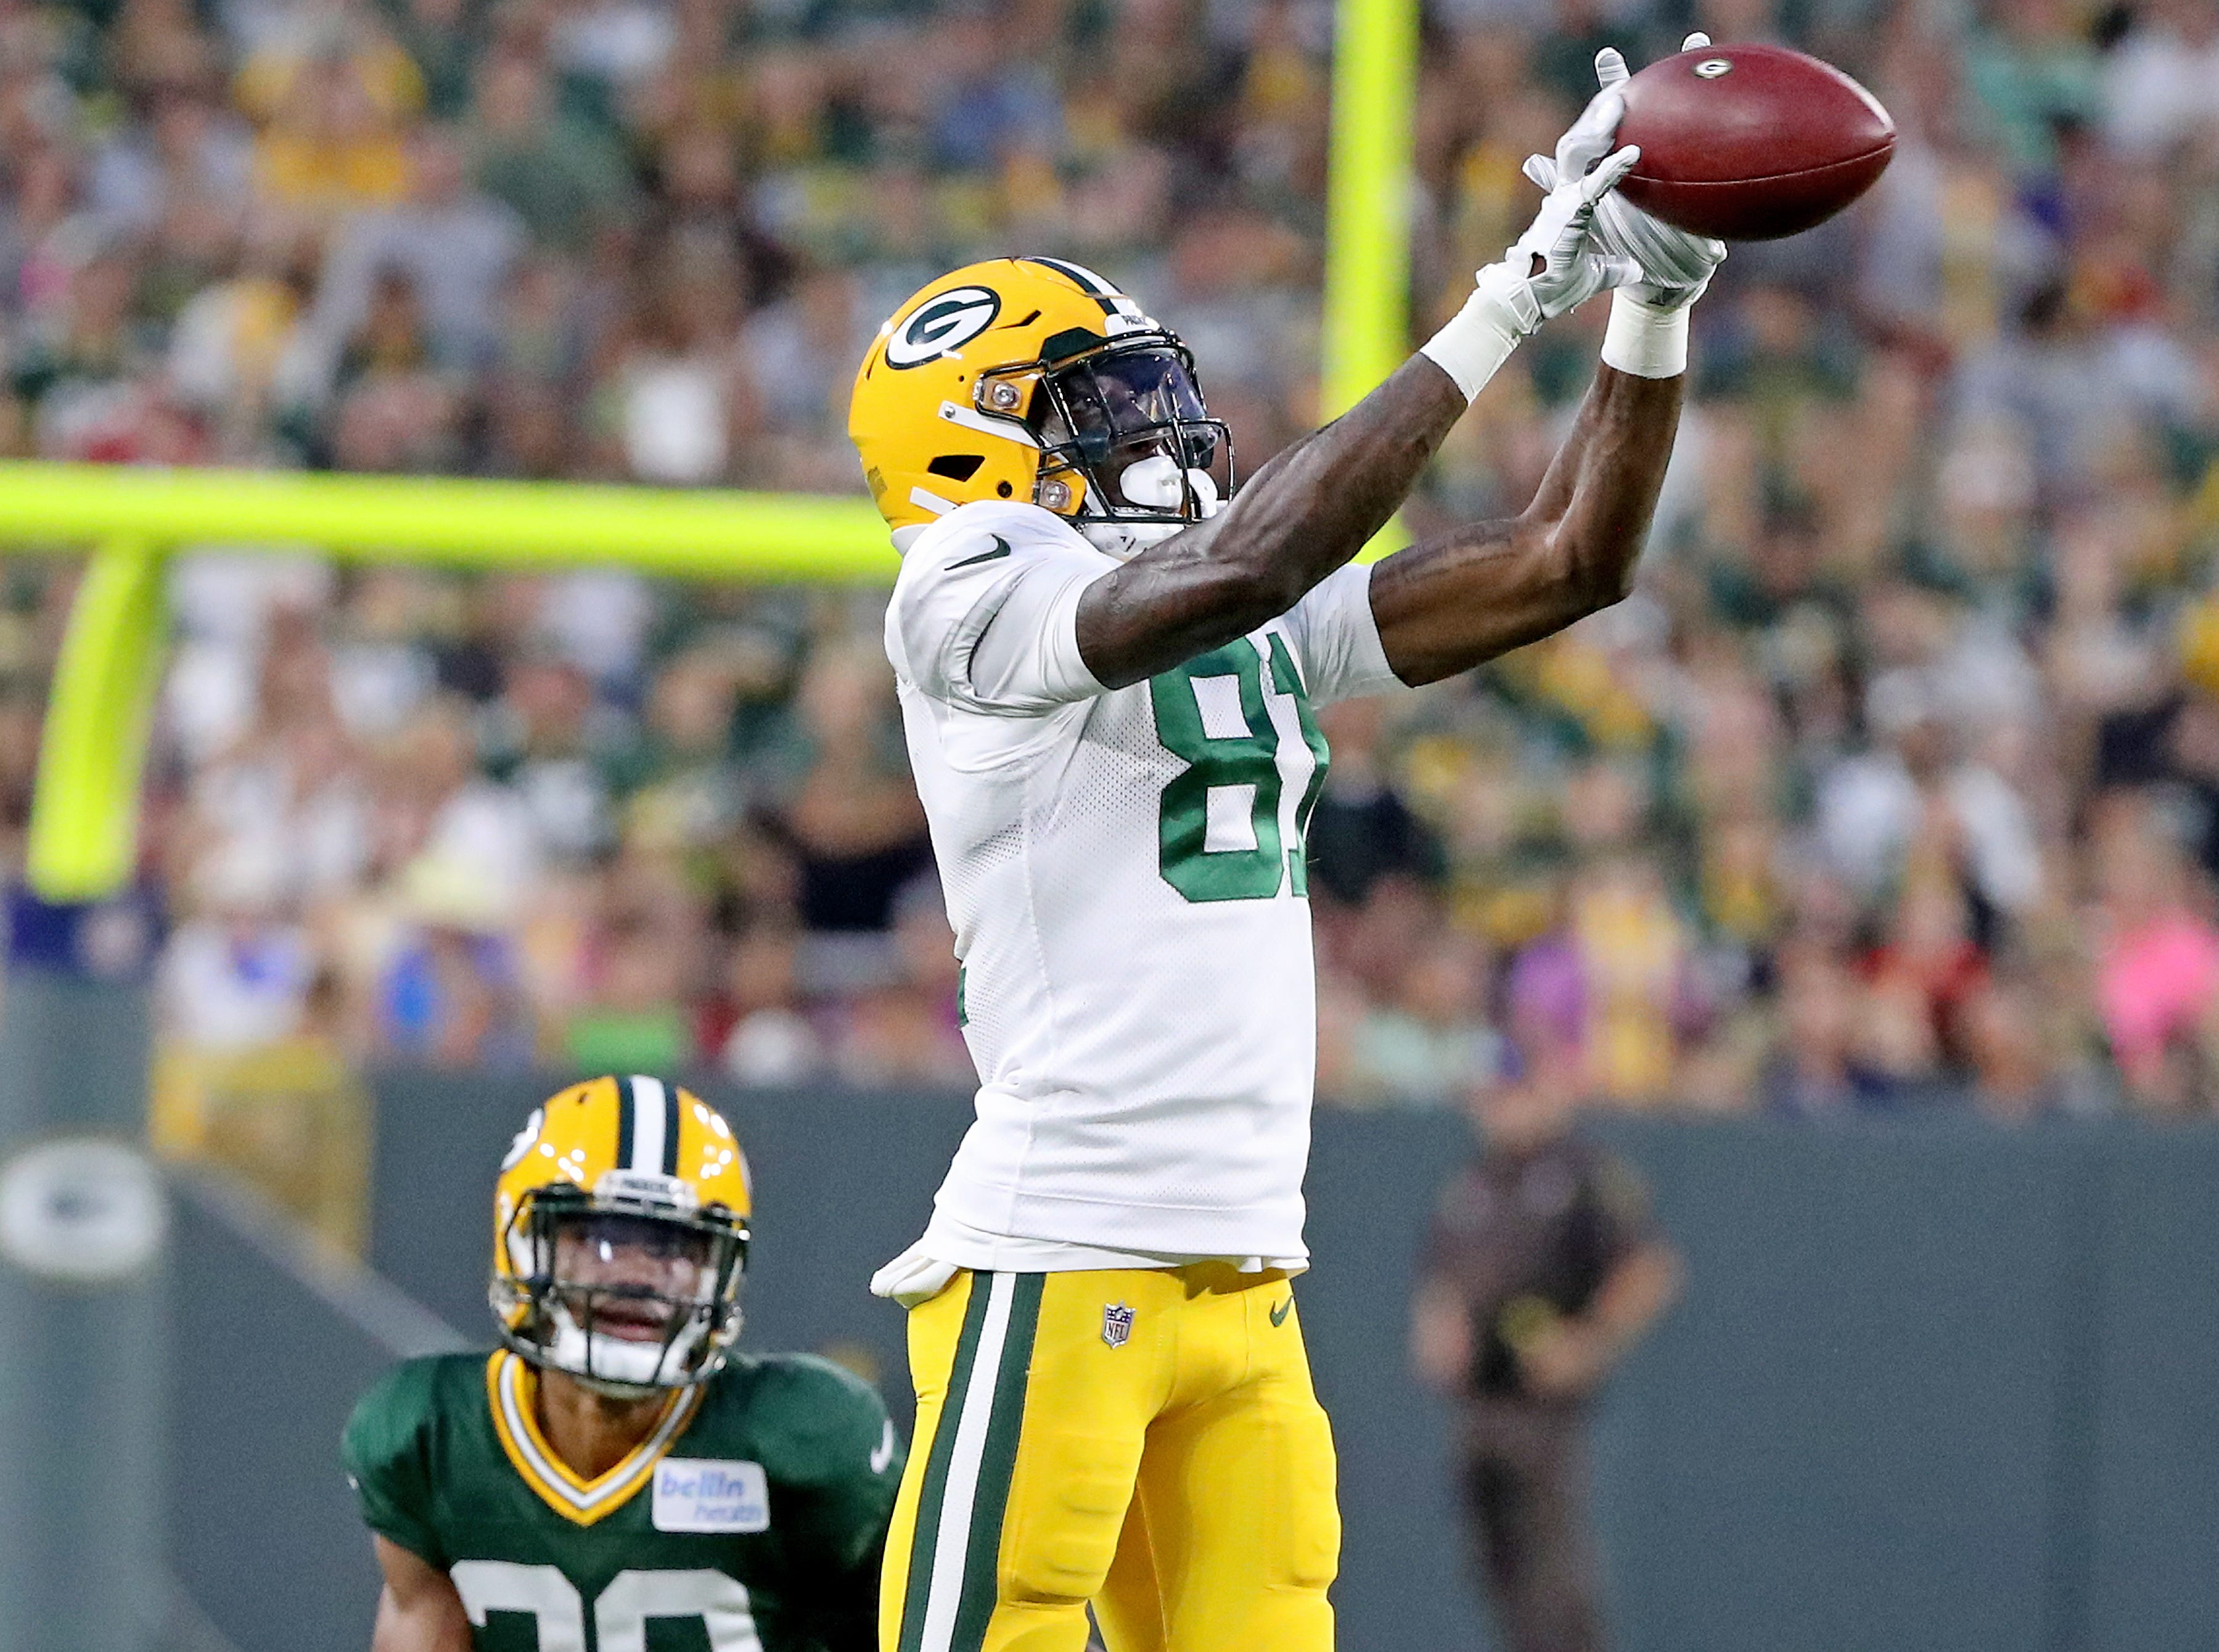 Green Bay Packers wide receiver Geronimo Allison (81) makes leaping catch during Green Bay Packers Family Night  Saturday, August 4, 2018 at Lambeau Field in Green Bay, Wis.,